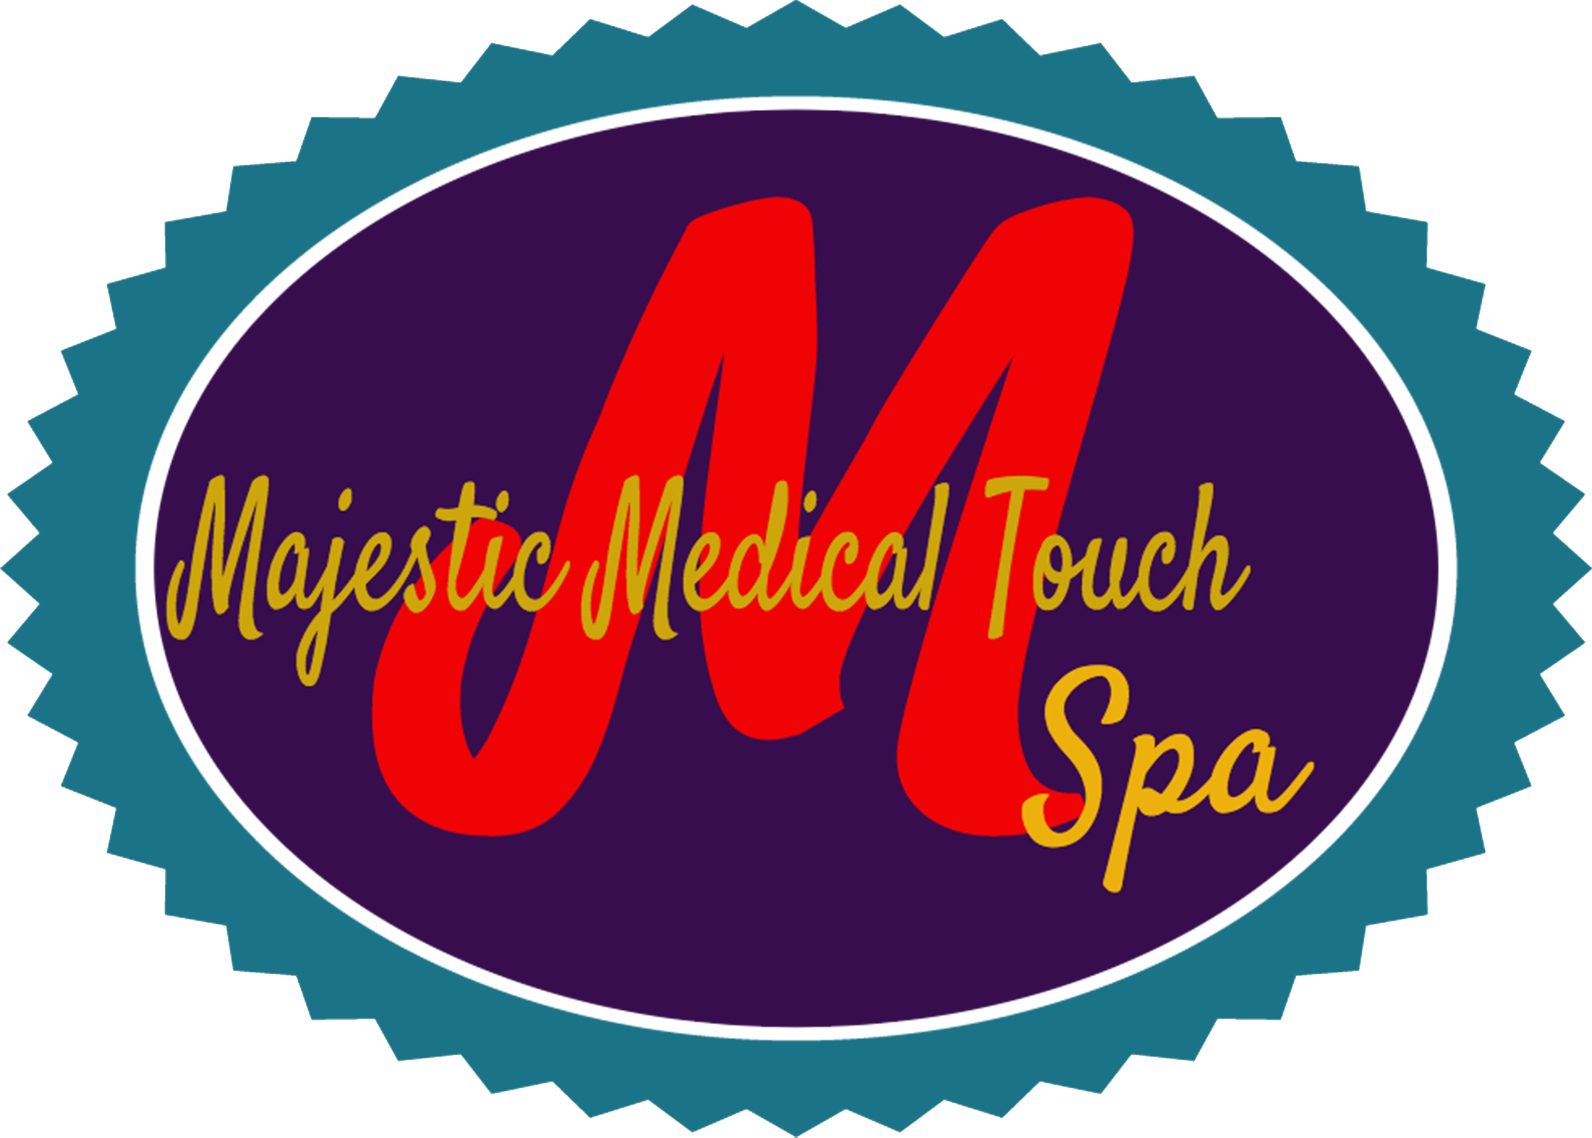 Majestic Medical Touch Spa